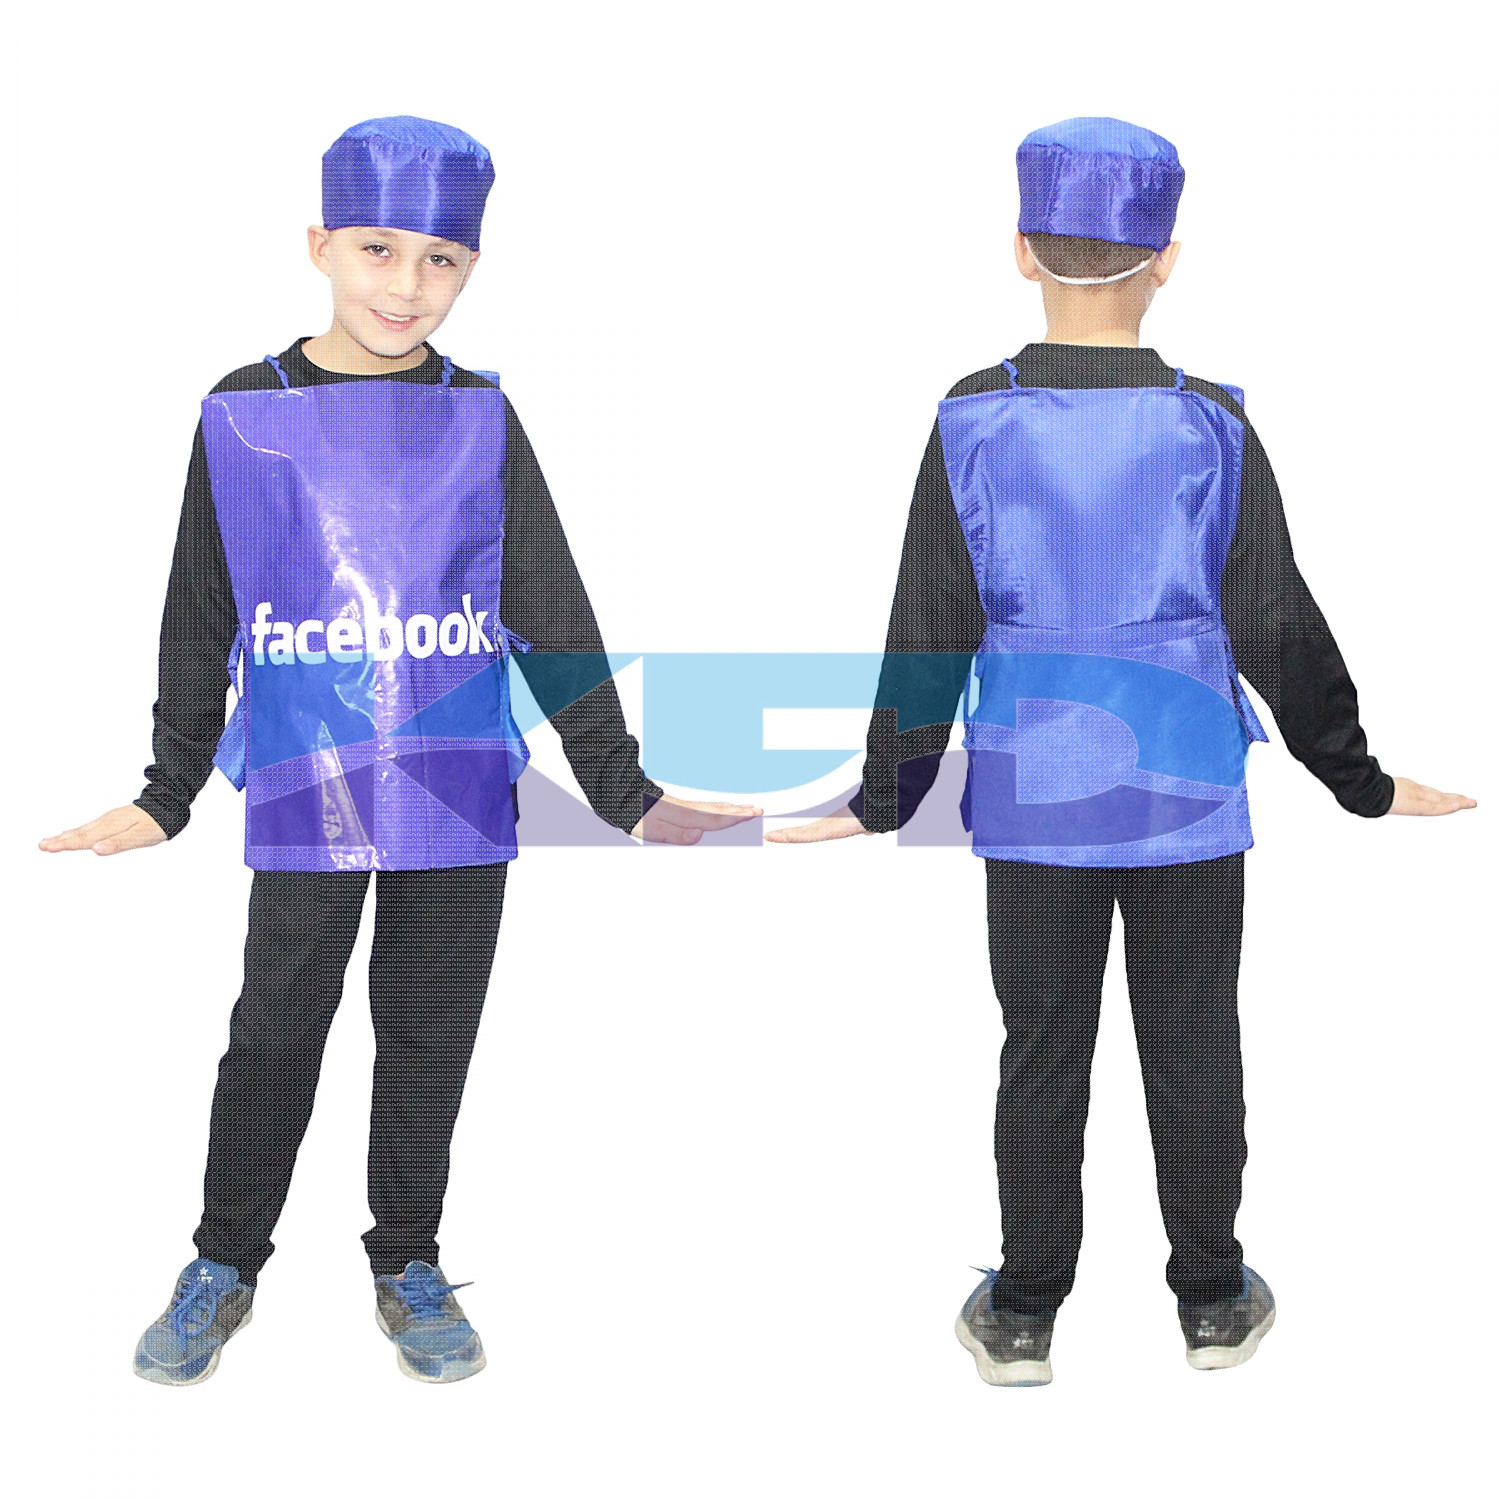 Facebook fancy dress for kids,Object Costume for School  Annual function/Theme Party/Competition/Stage Shows Dress